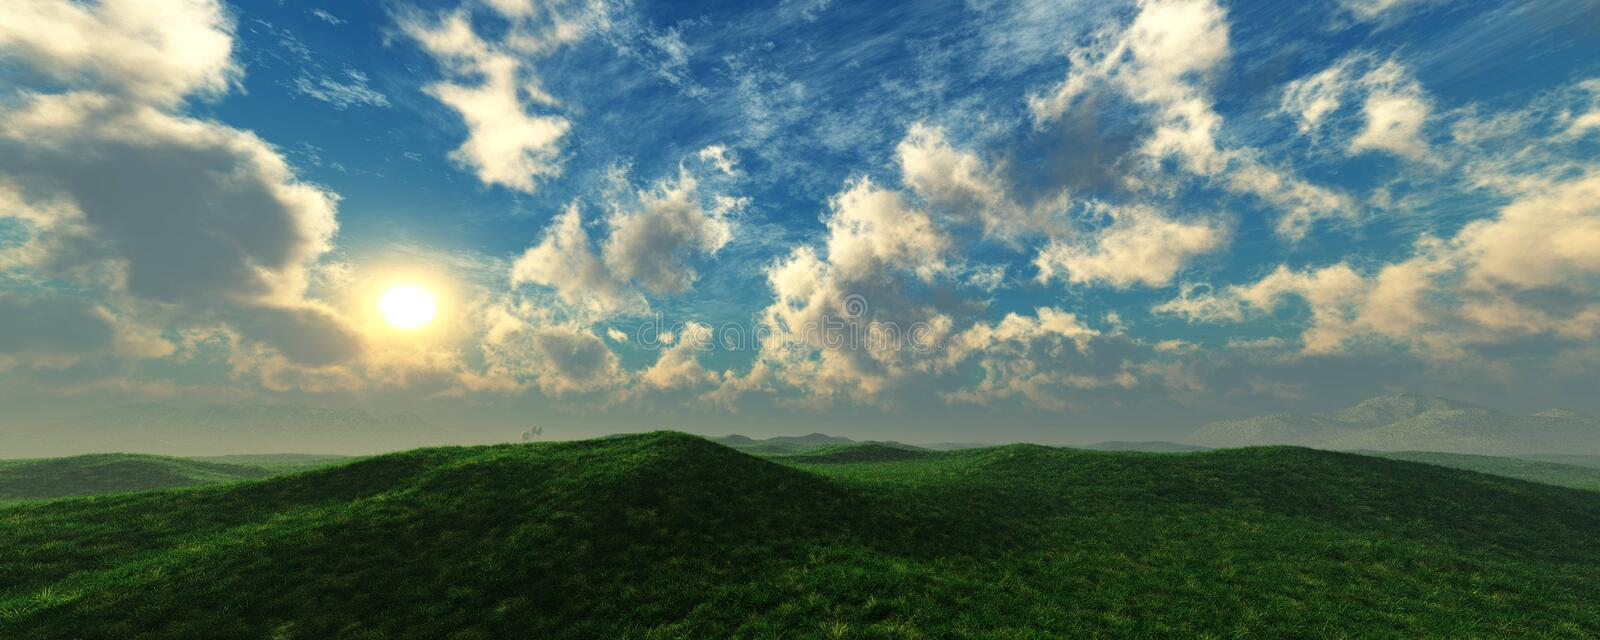 Panorama of the hilly landscape stock photos